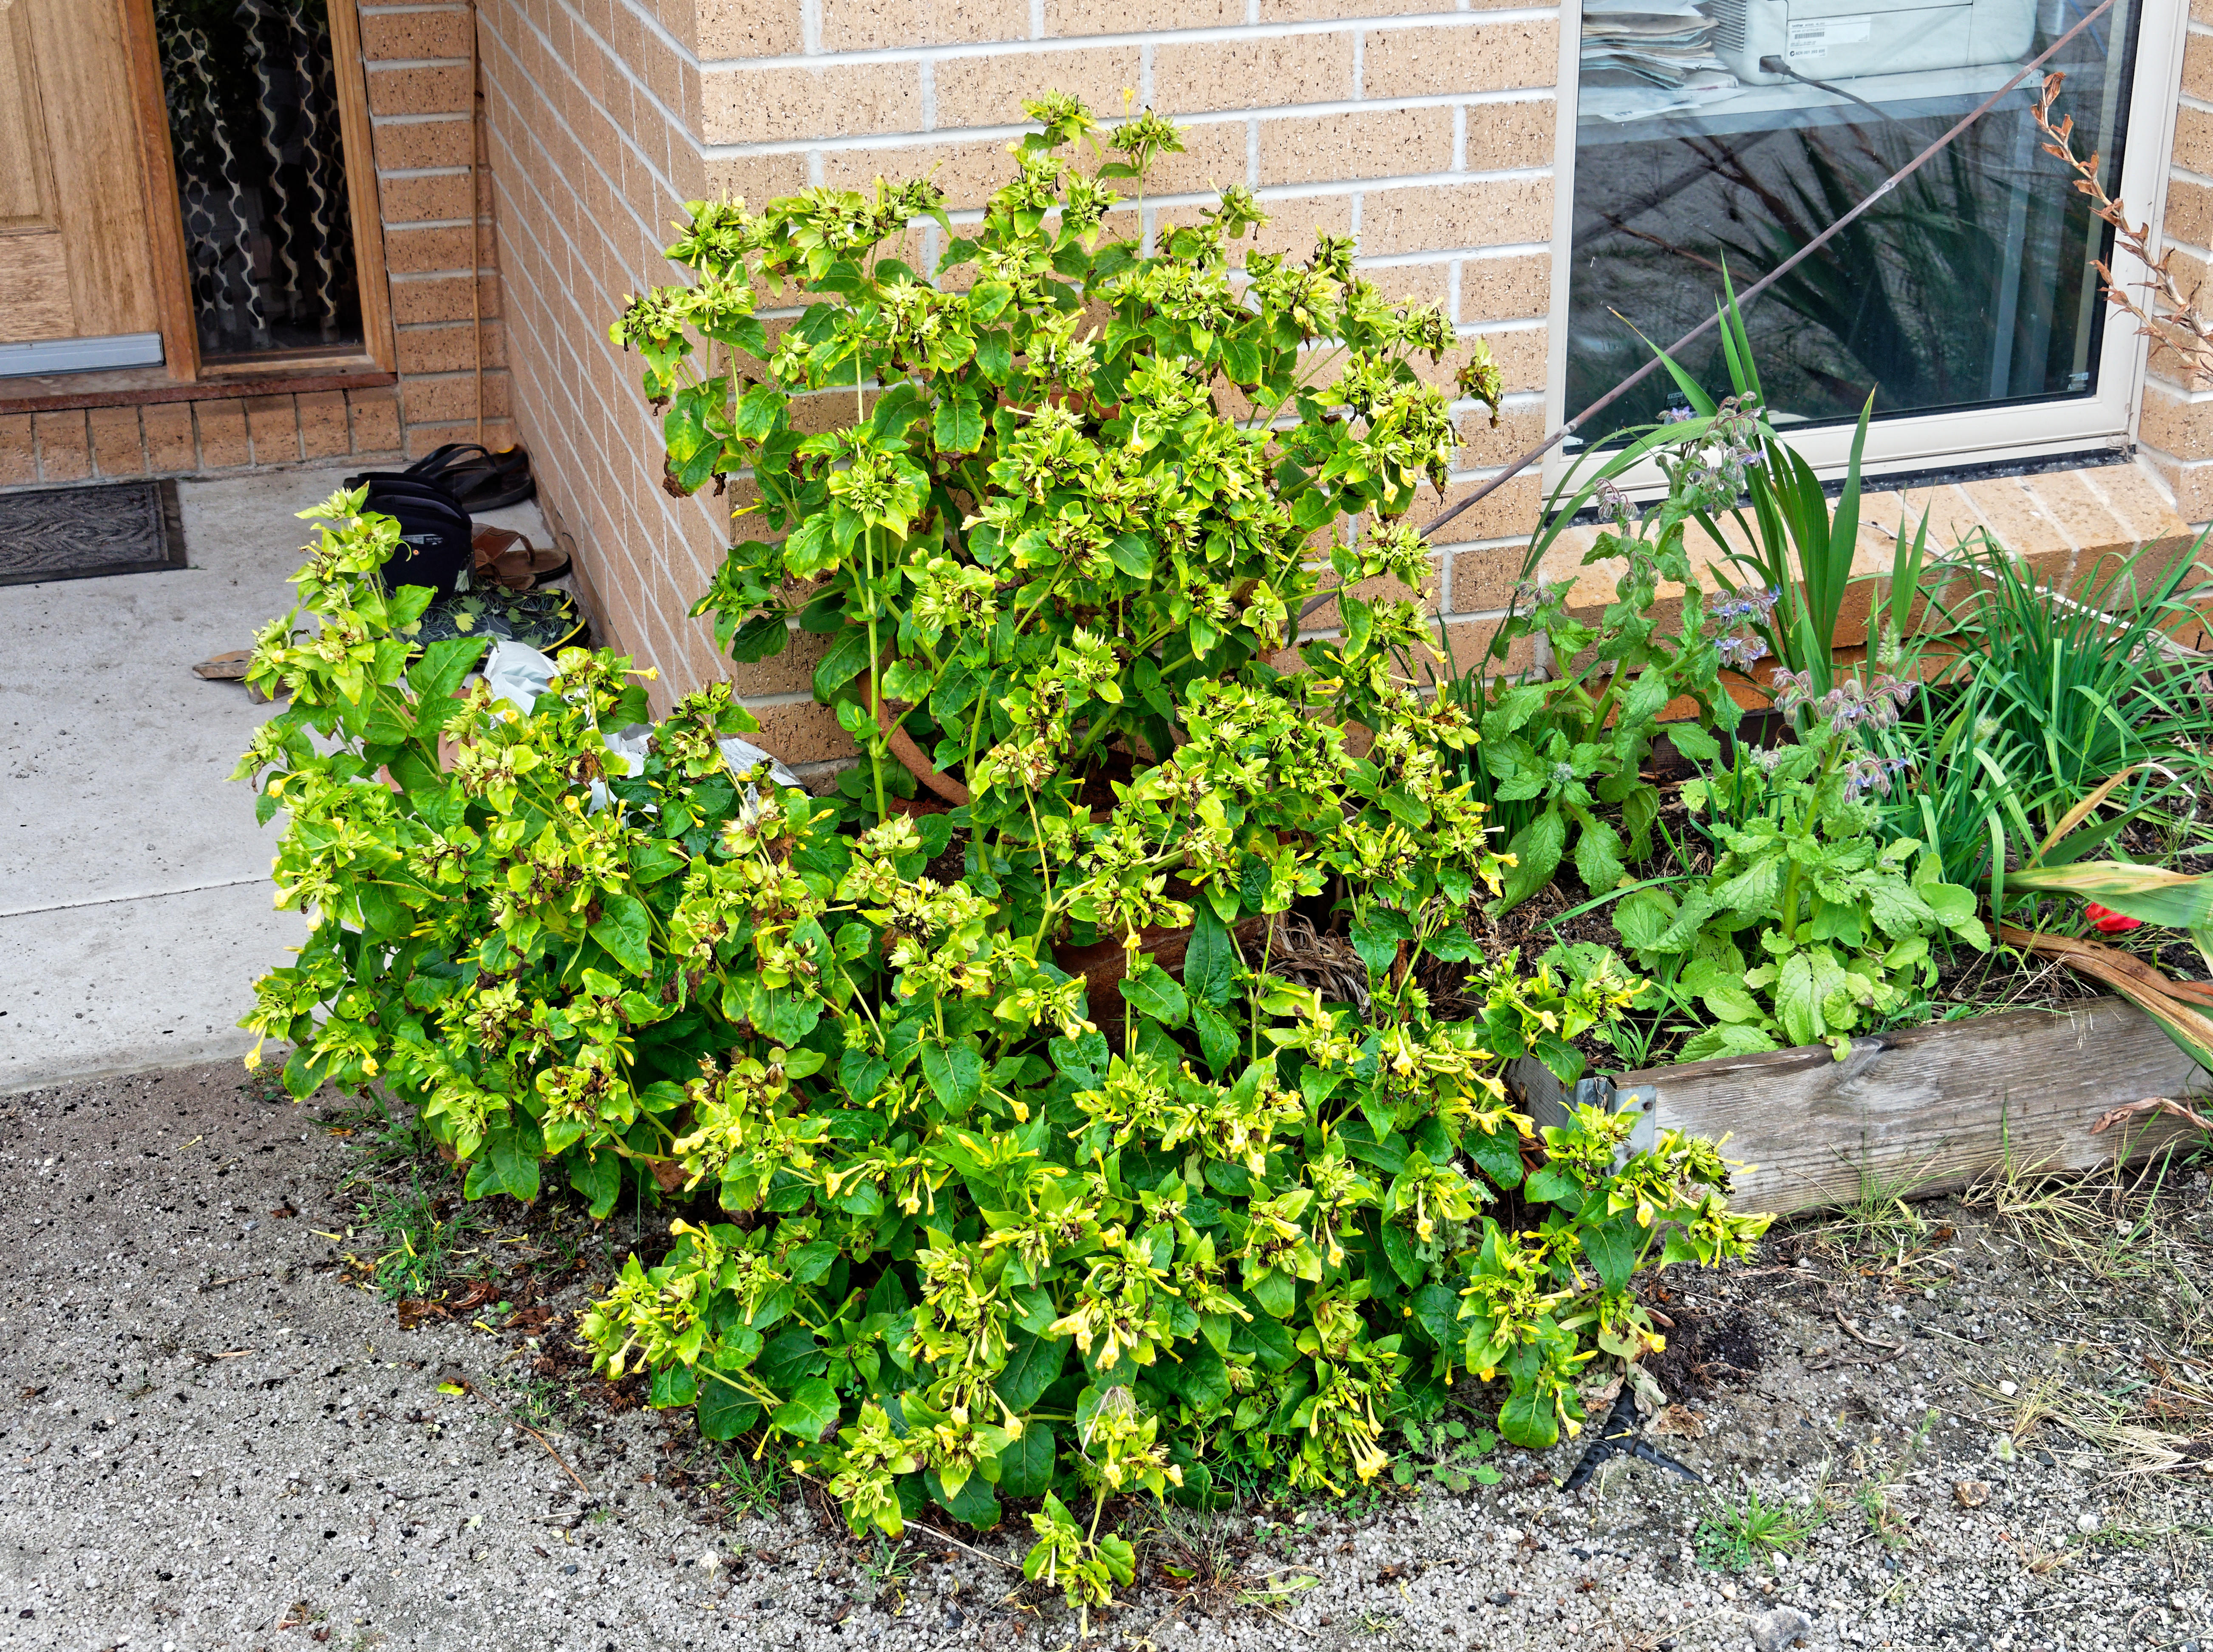 This should be Mirabilis-jalapa.jpeg.  Is it missing?